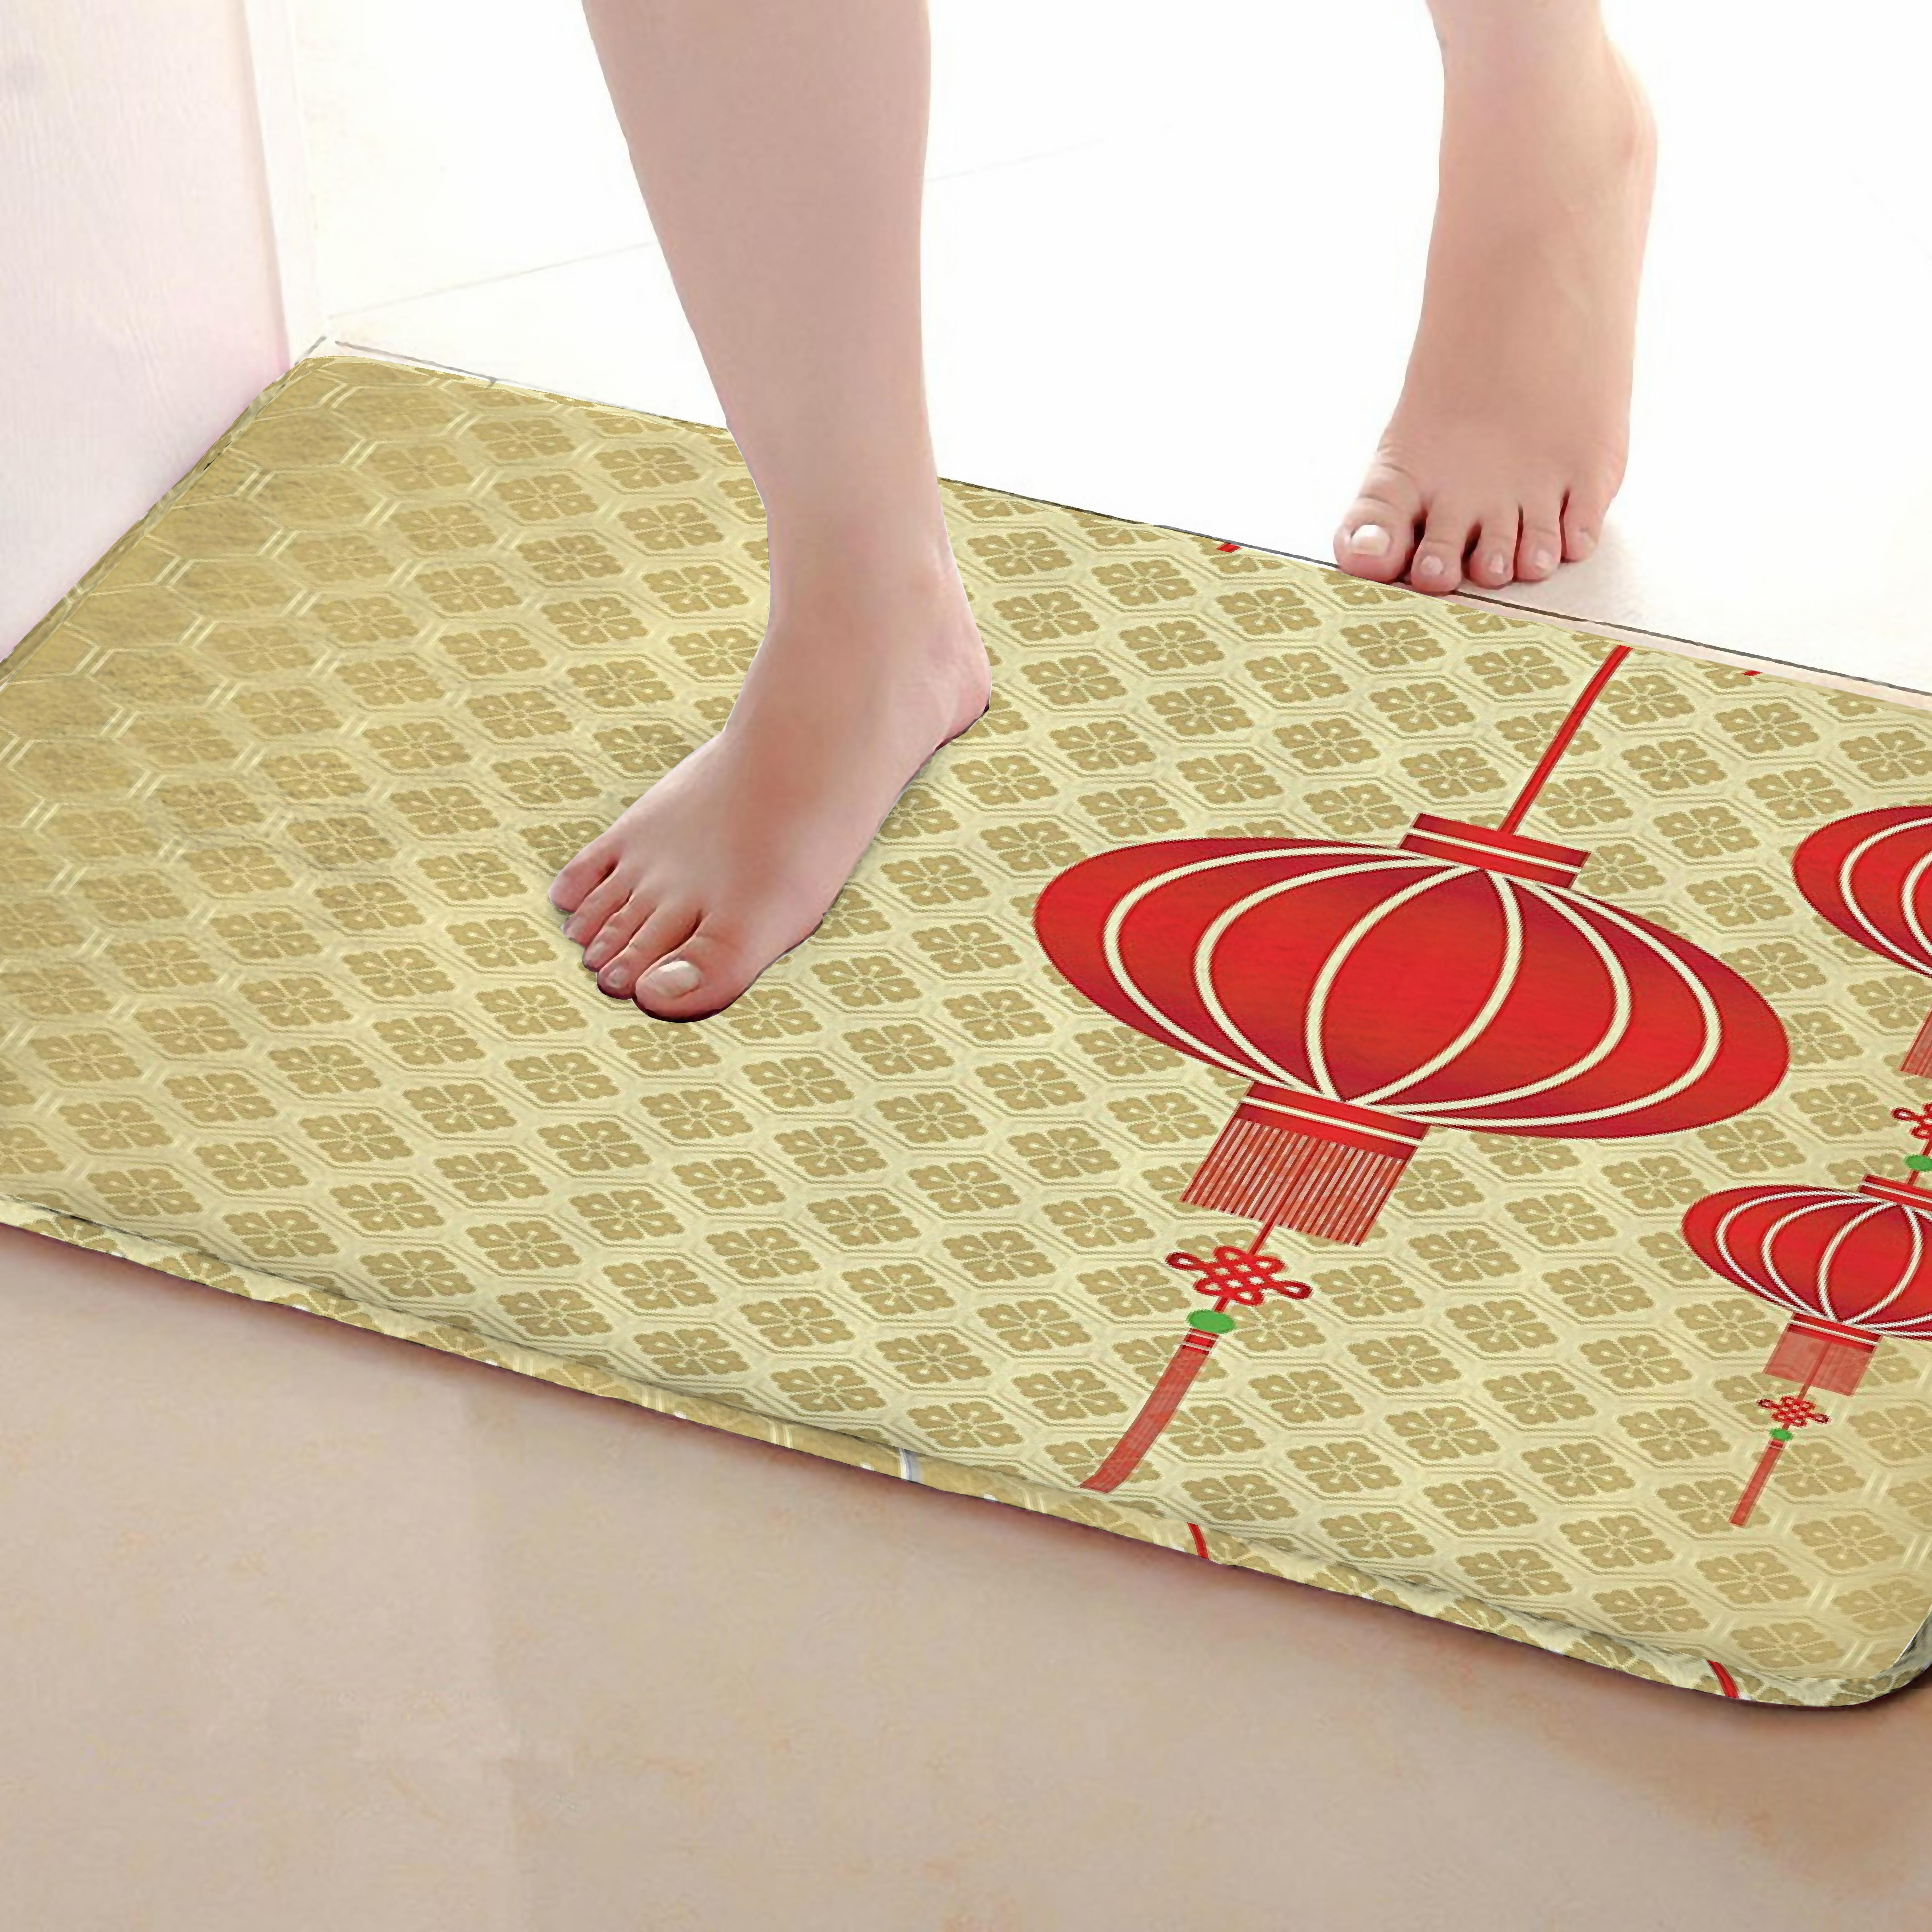 Red Lantern Style Bathroom Mat,Funny Anti skid Bath Mat,Shower Curtains Accessories,Matching Your Shower Curtain